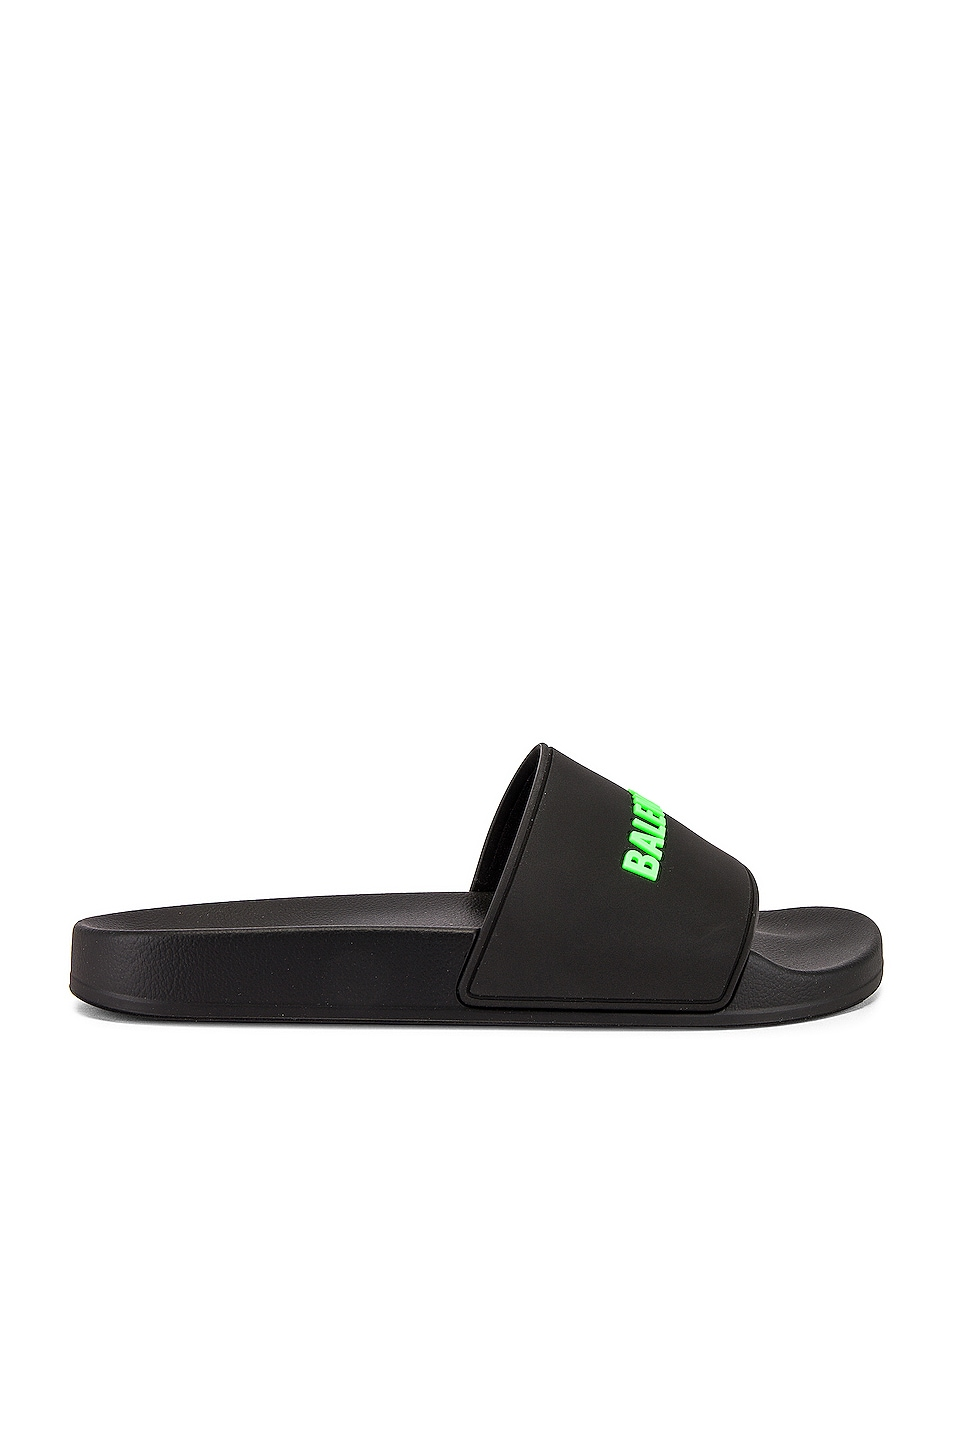 Image 2 of Balenciaga Rubber Logo Pool Slide in Black & Fluo Green